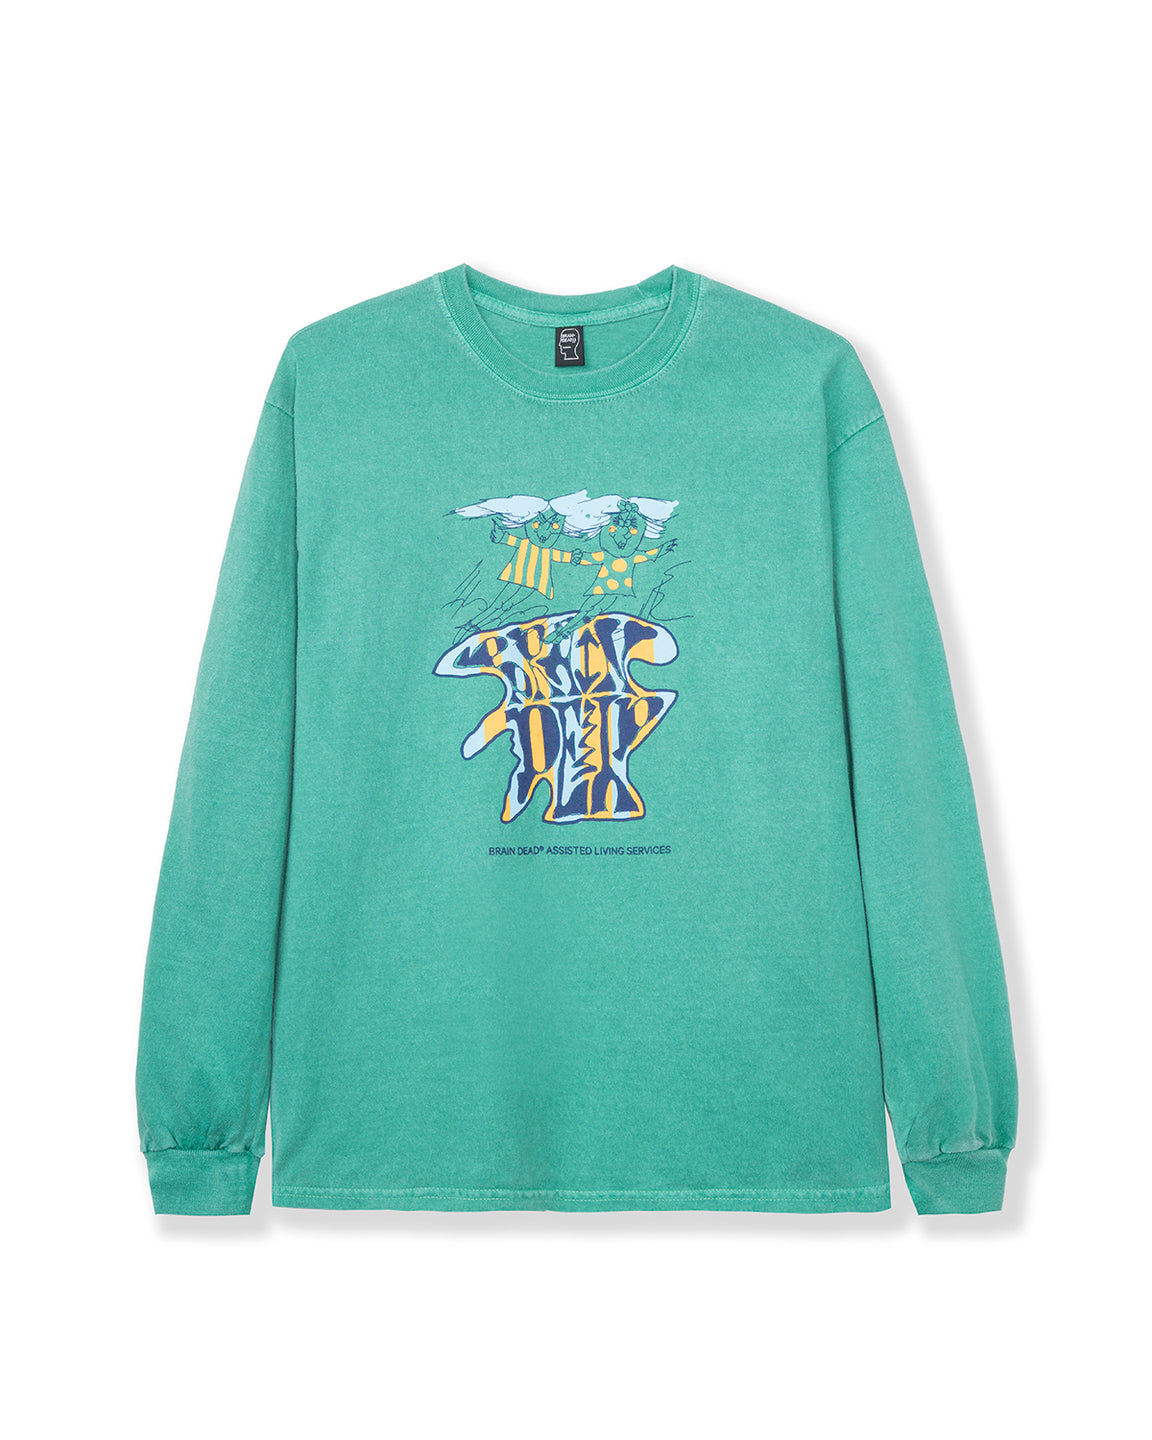 Leon Long Sleeve - Kelly Green